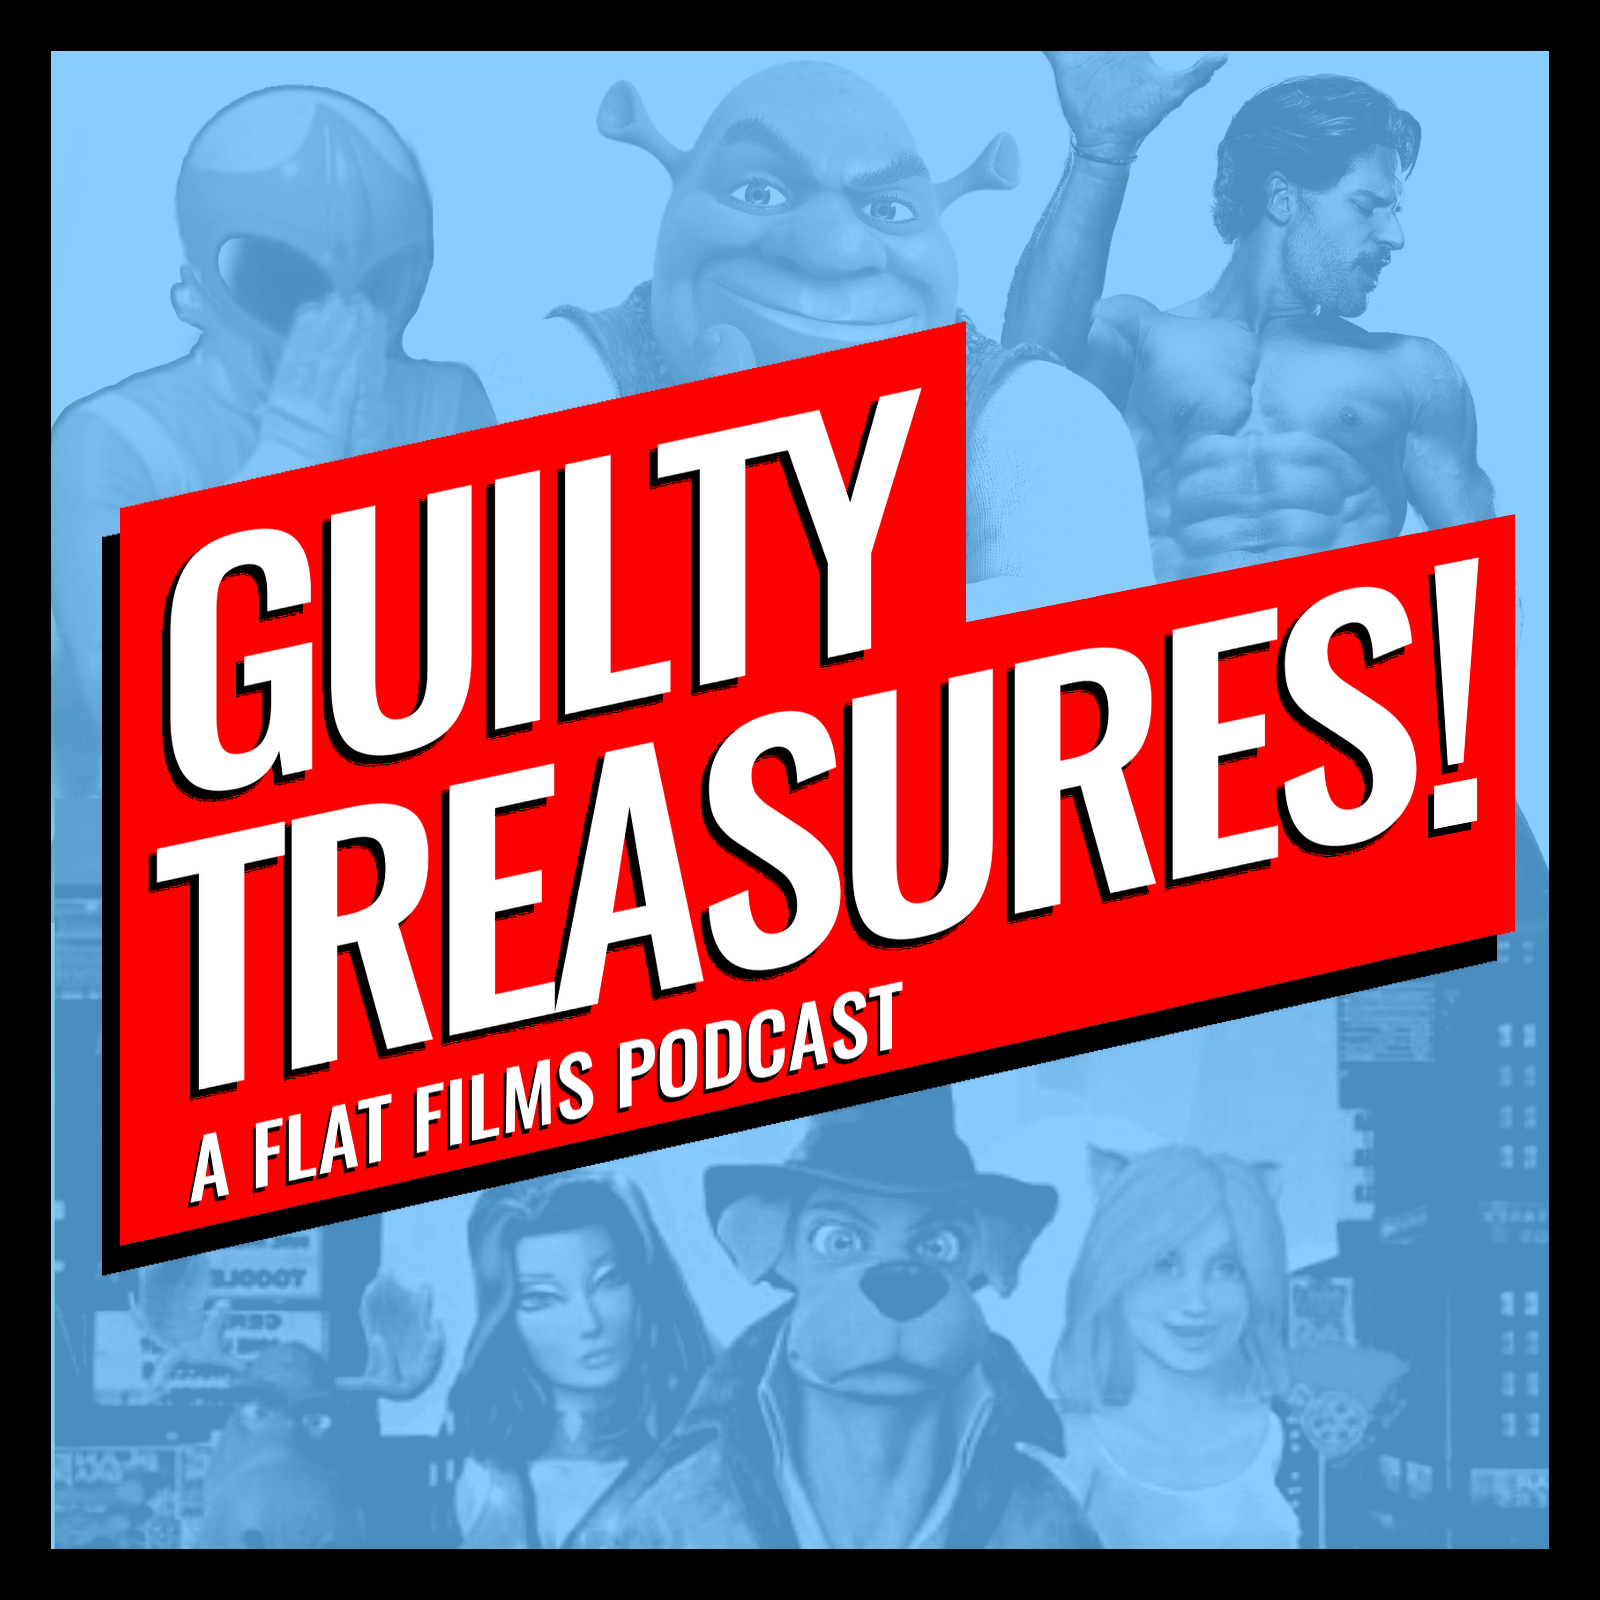 Guilty Treasures